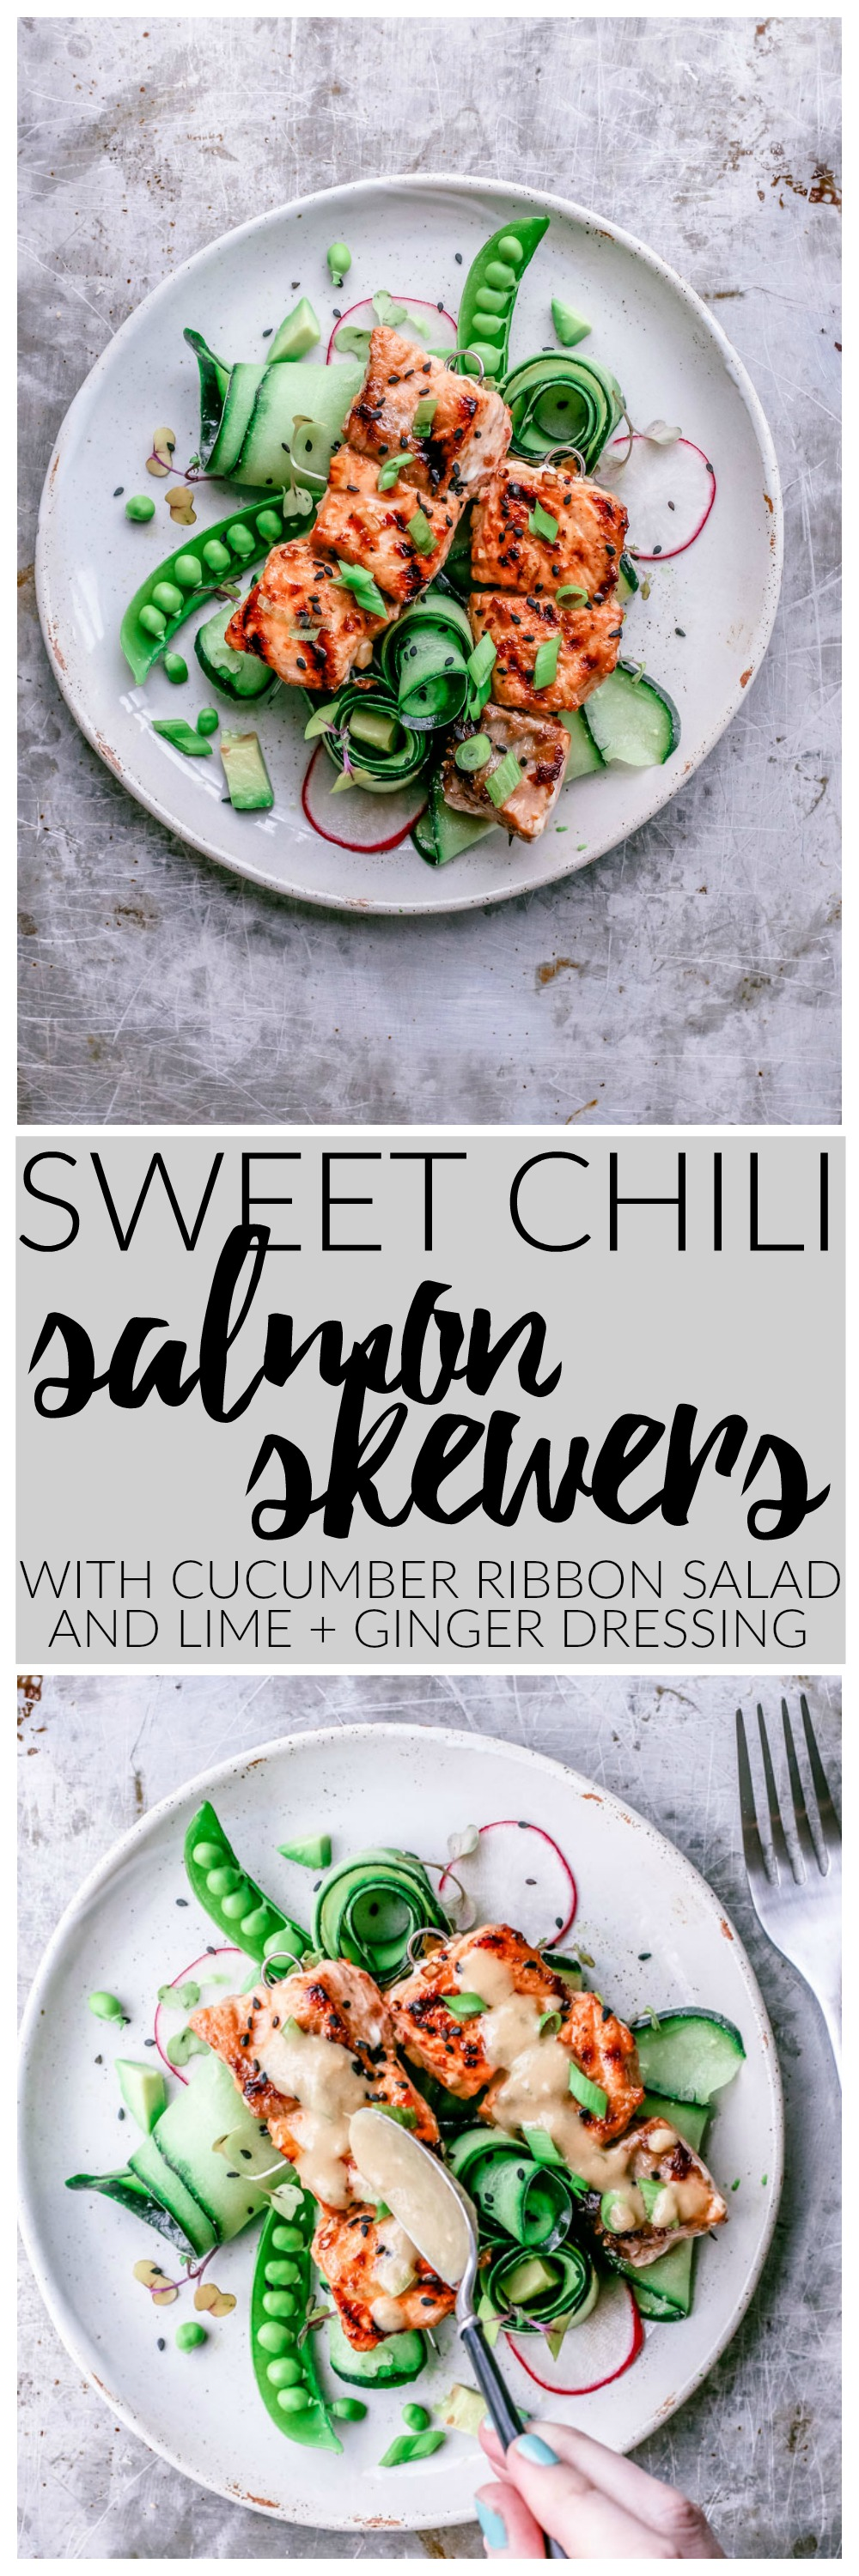 Sweet Chili Salmon Skewers With Cucumber Ribbon Salad and Lime + Ginger Dressing | Killing Thyme — this dish is the perfect way to welcome the warm weather, especially out on the patio with a crisp glass of white wine!